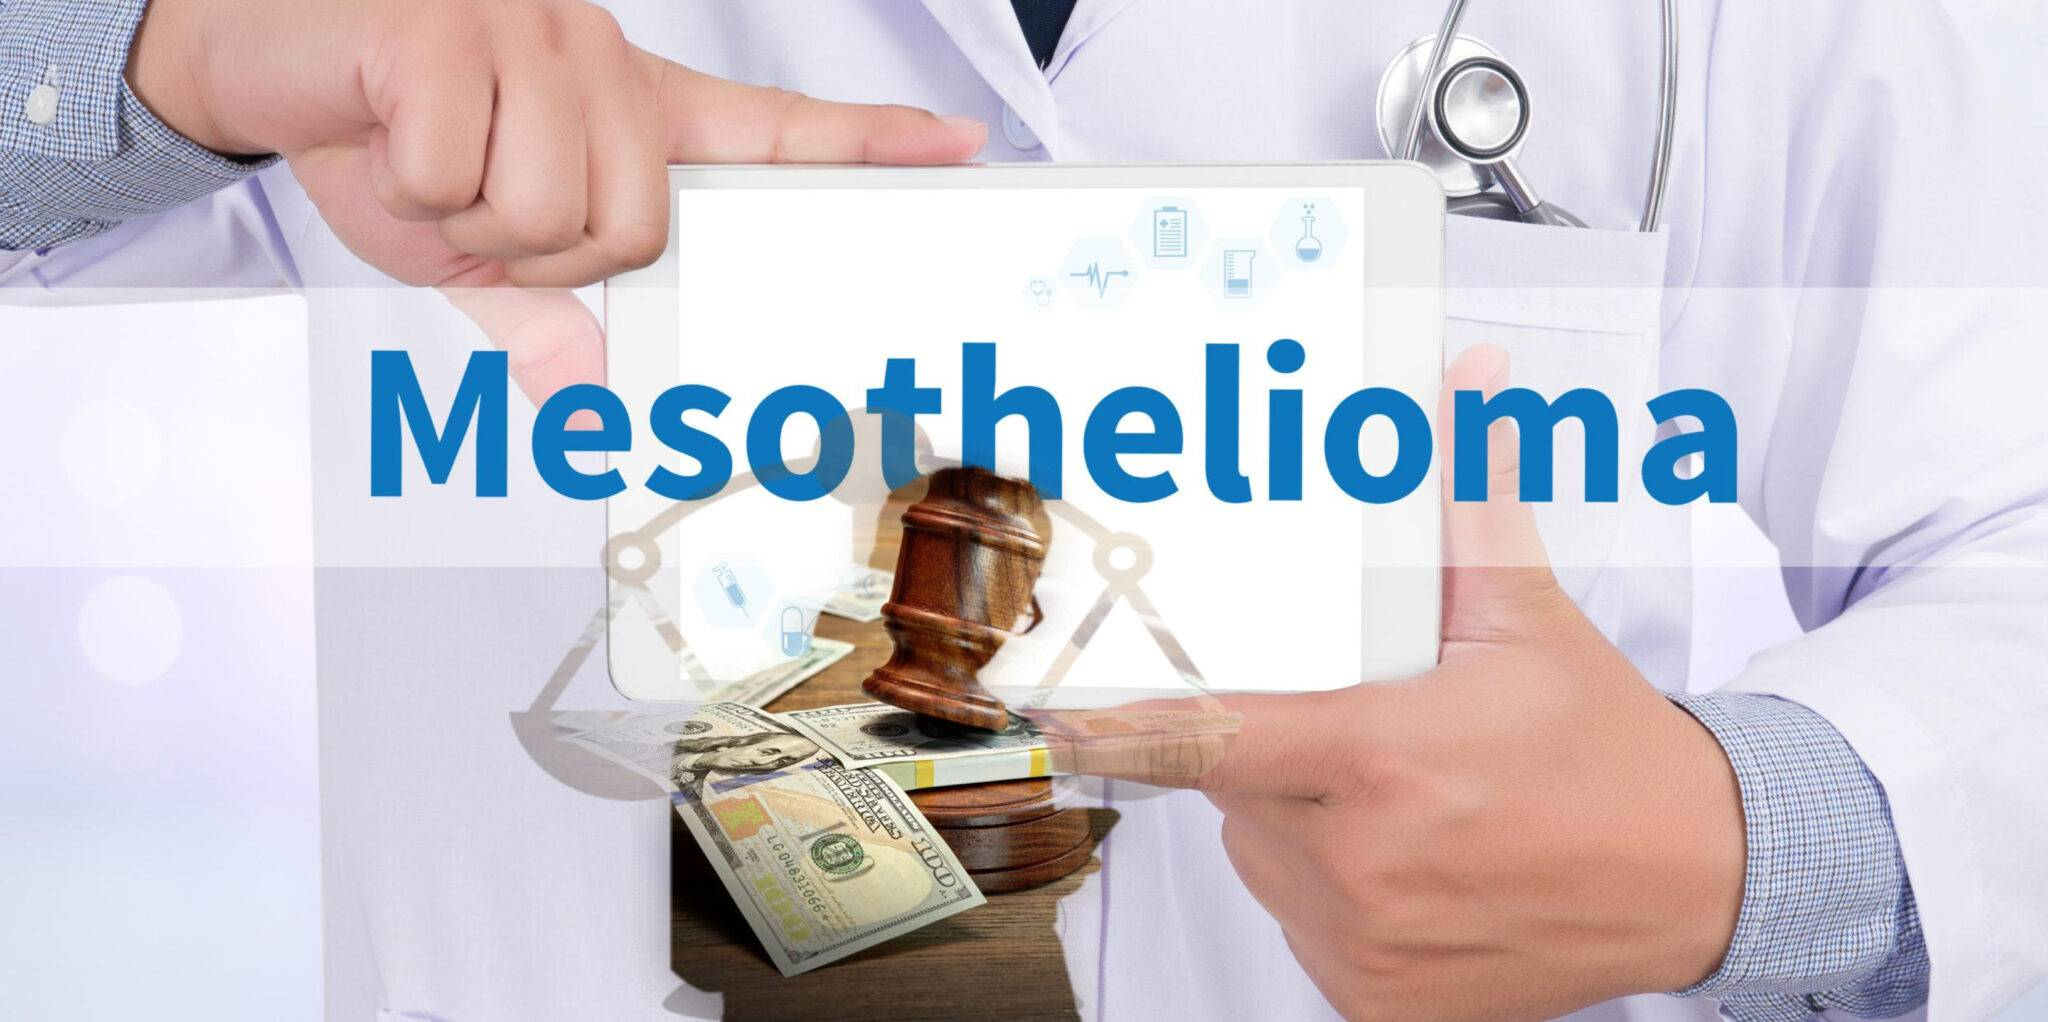 How To Get Mesothelioma Financial Compensation